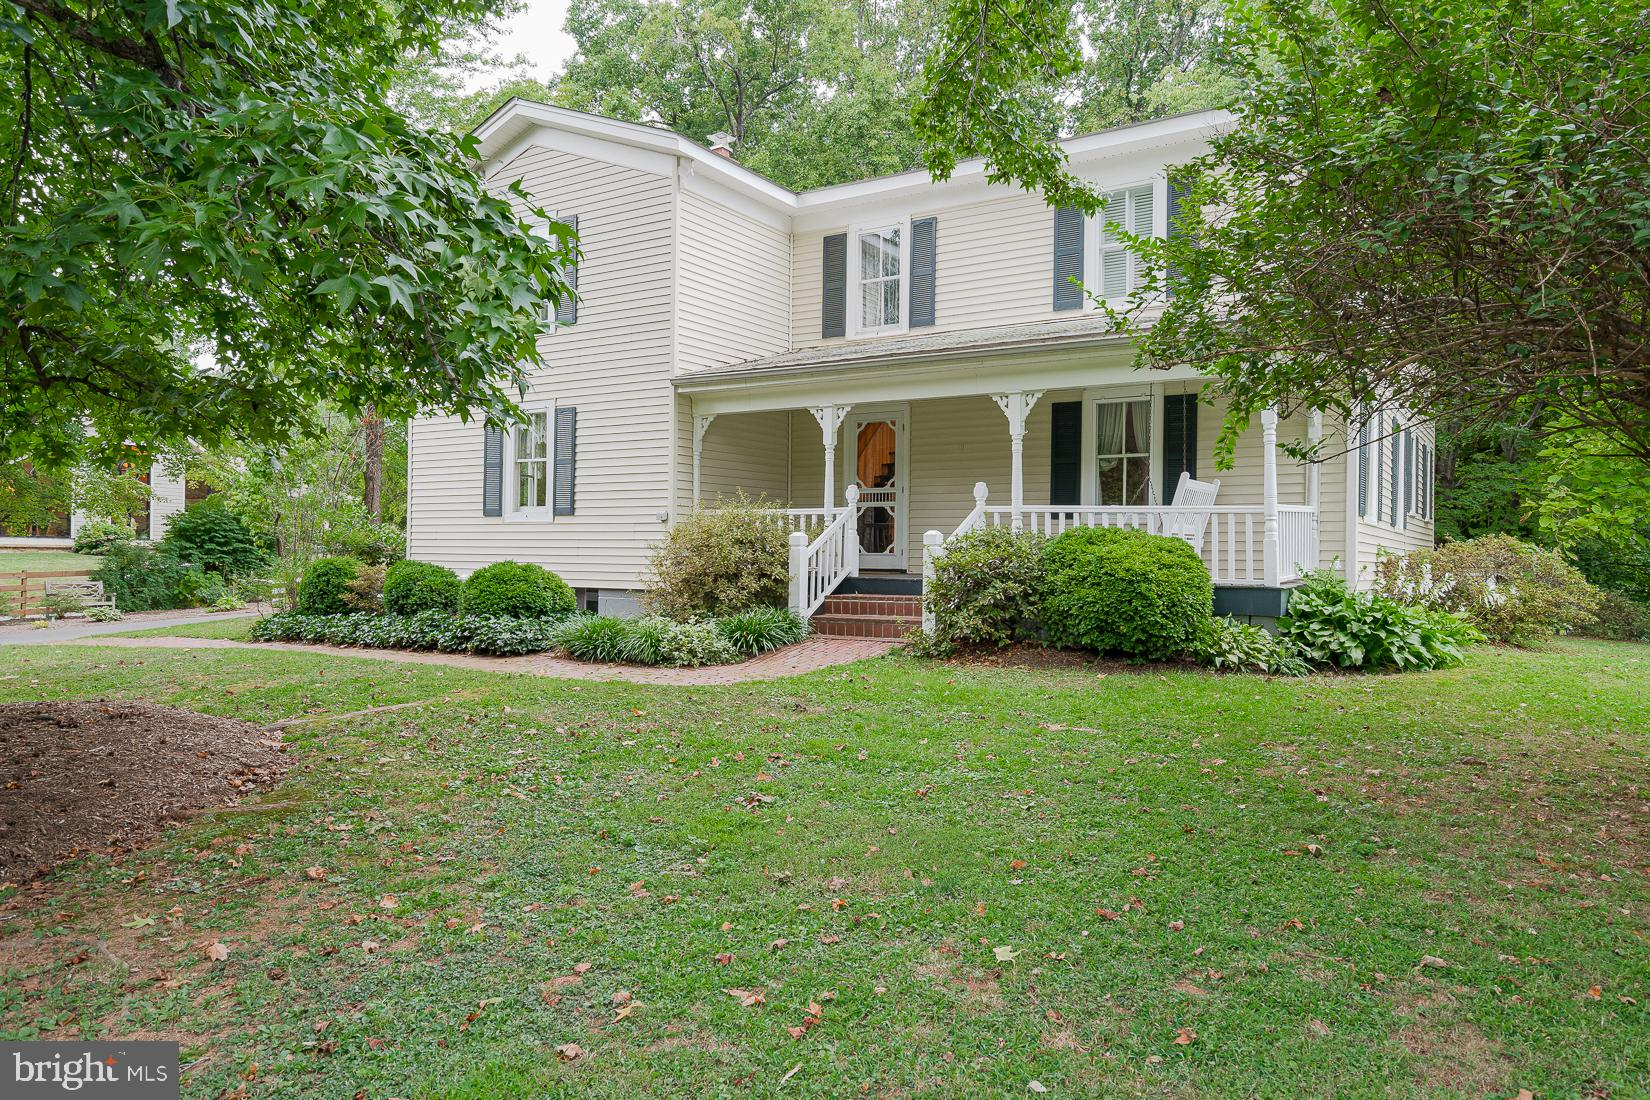 Welcome home! This gorgeous 5 bedroom/3 bath vintage colonial farmhouse situated on a beautiful 1.16